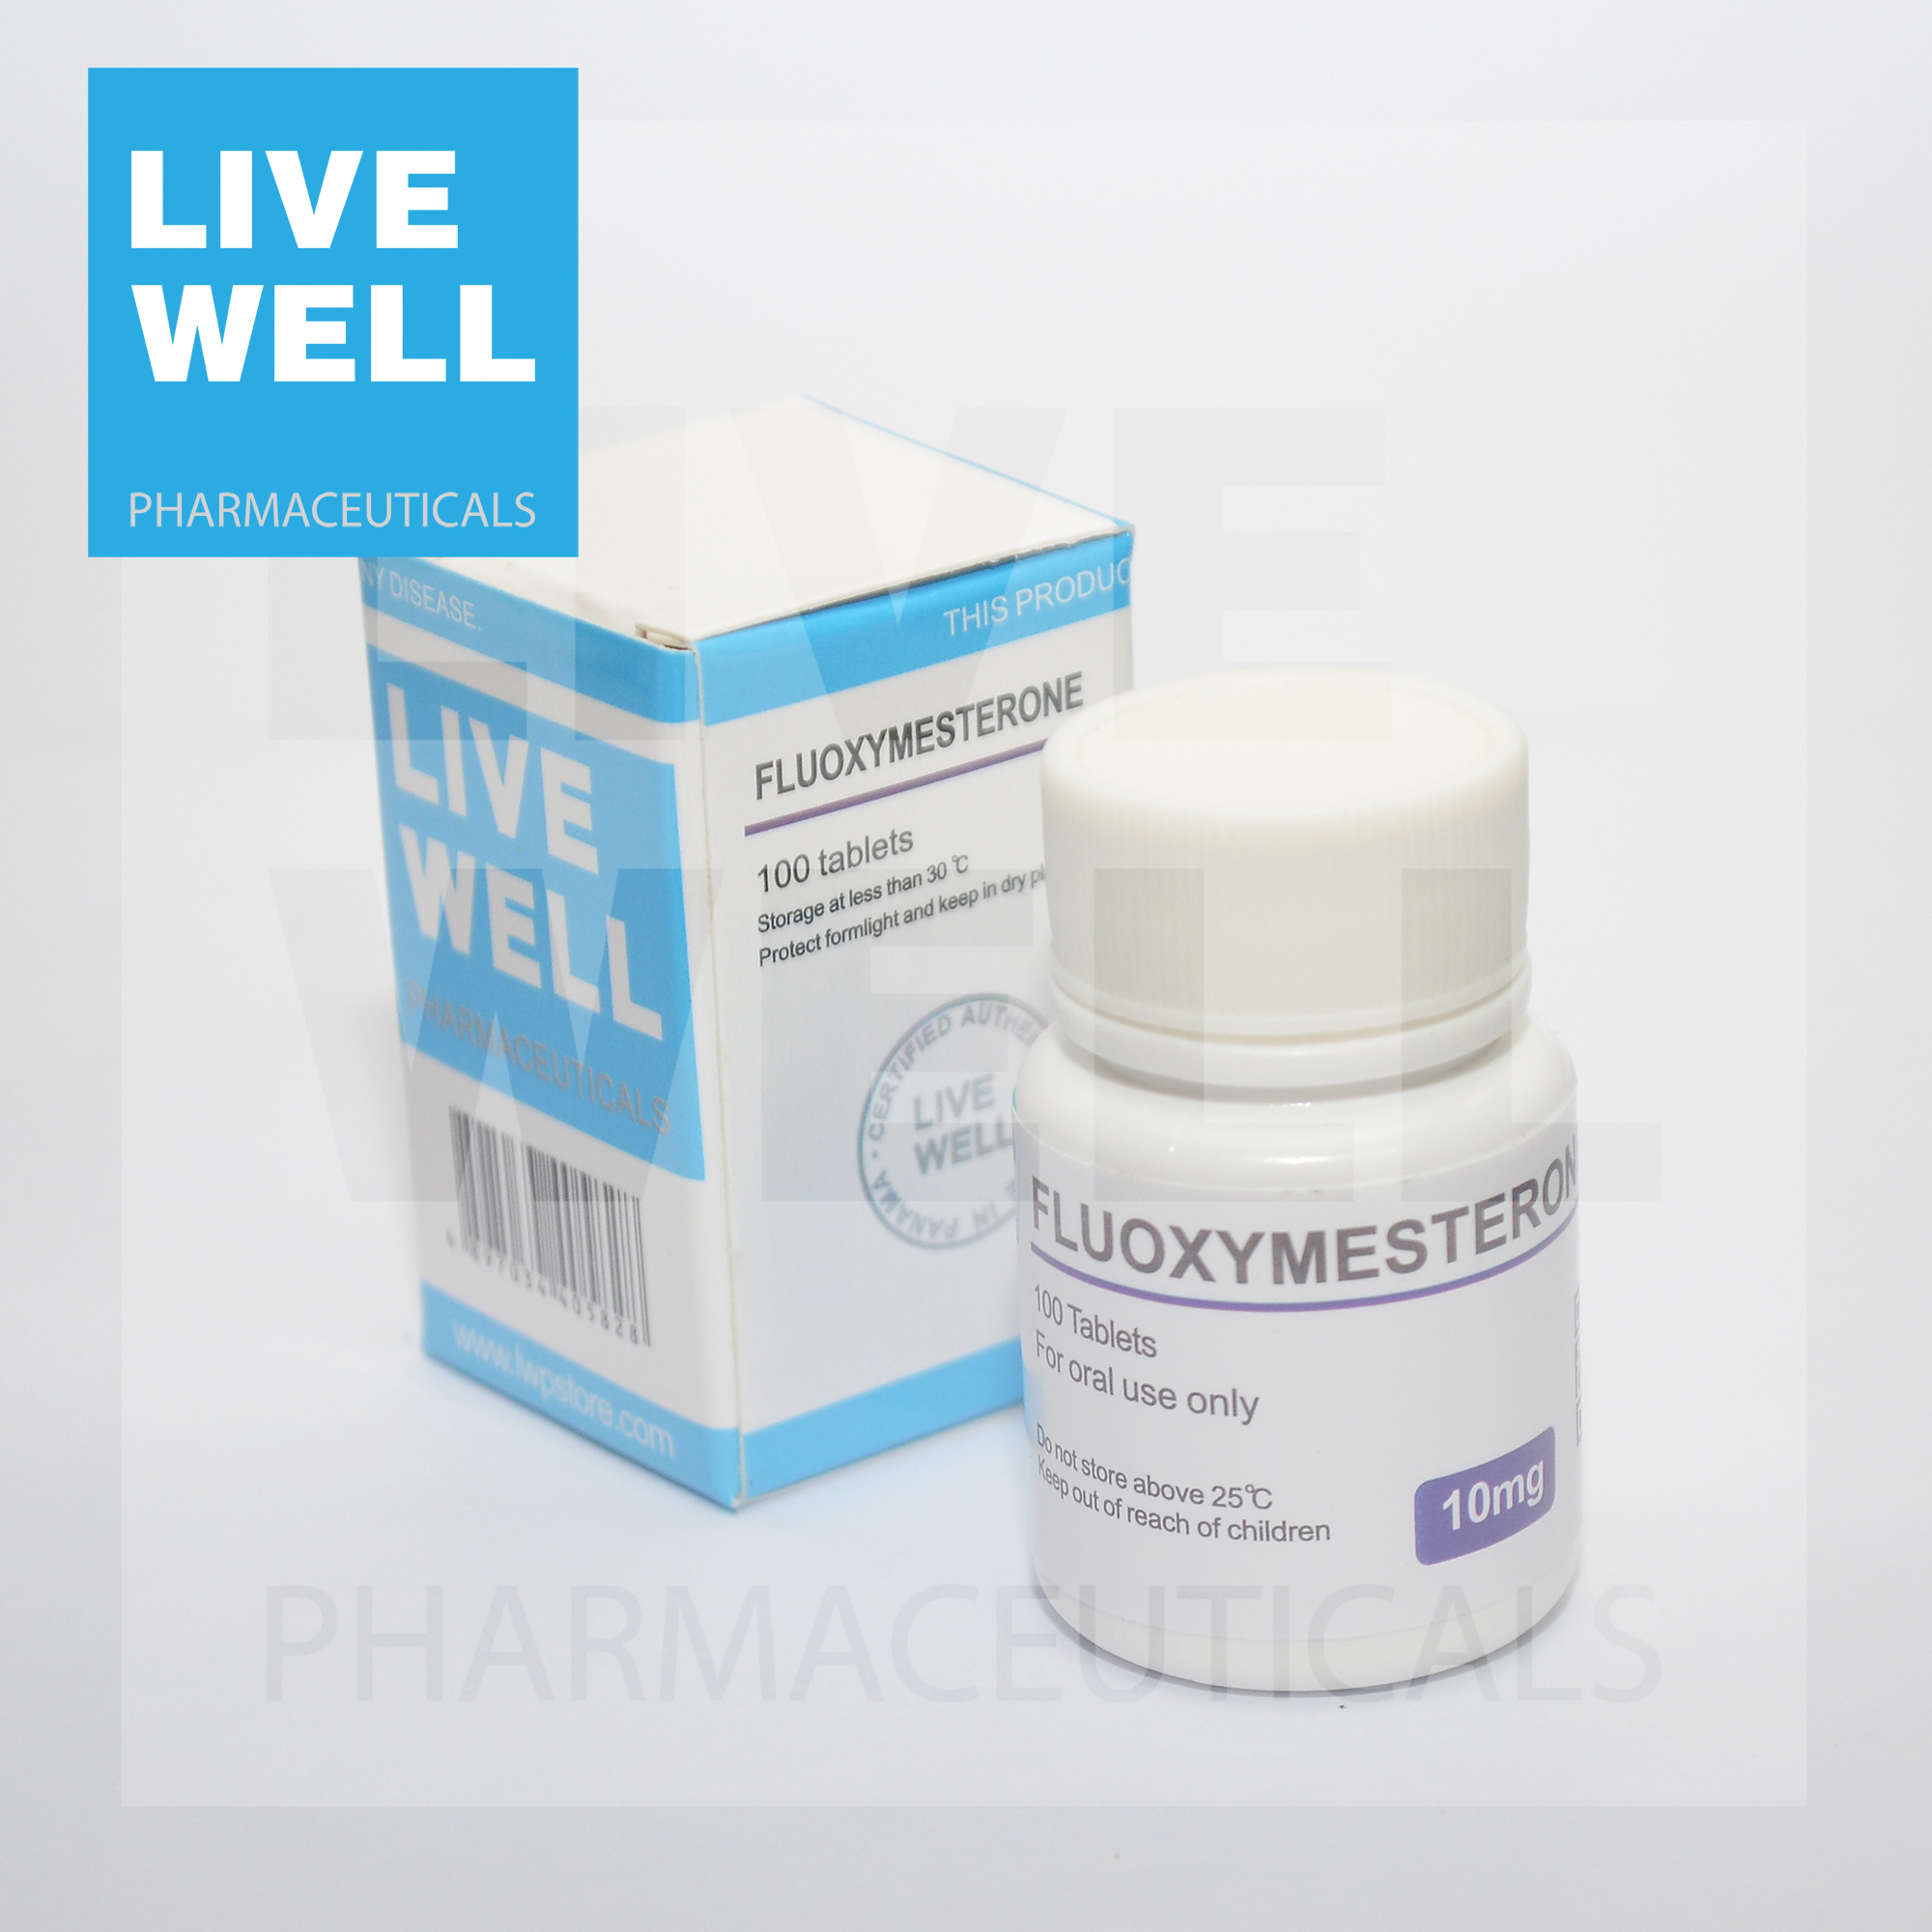 Fluoxymesterone 10mg